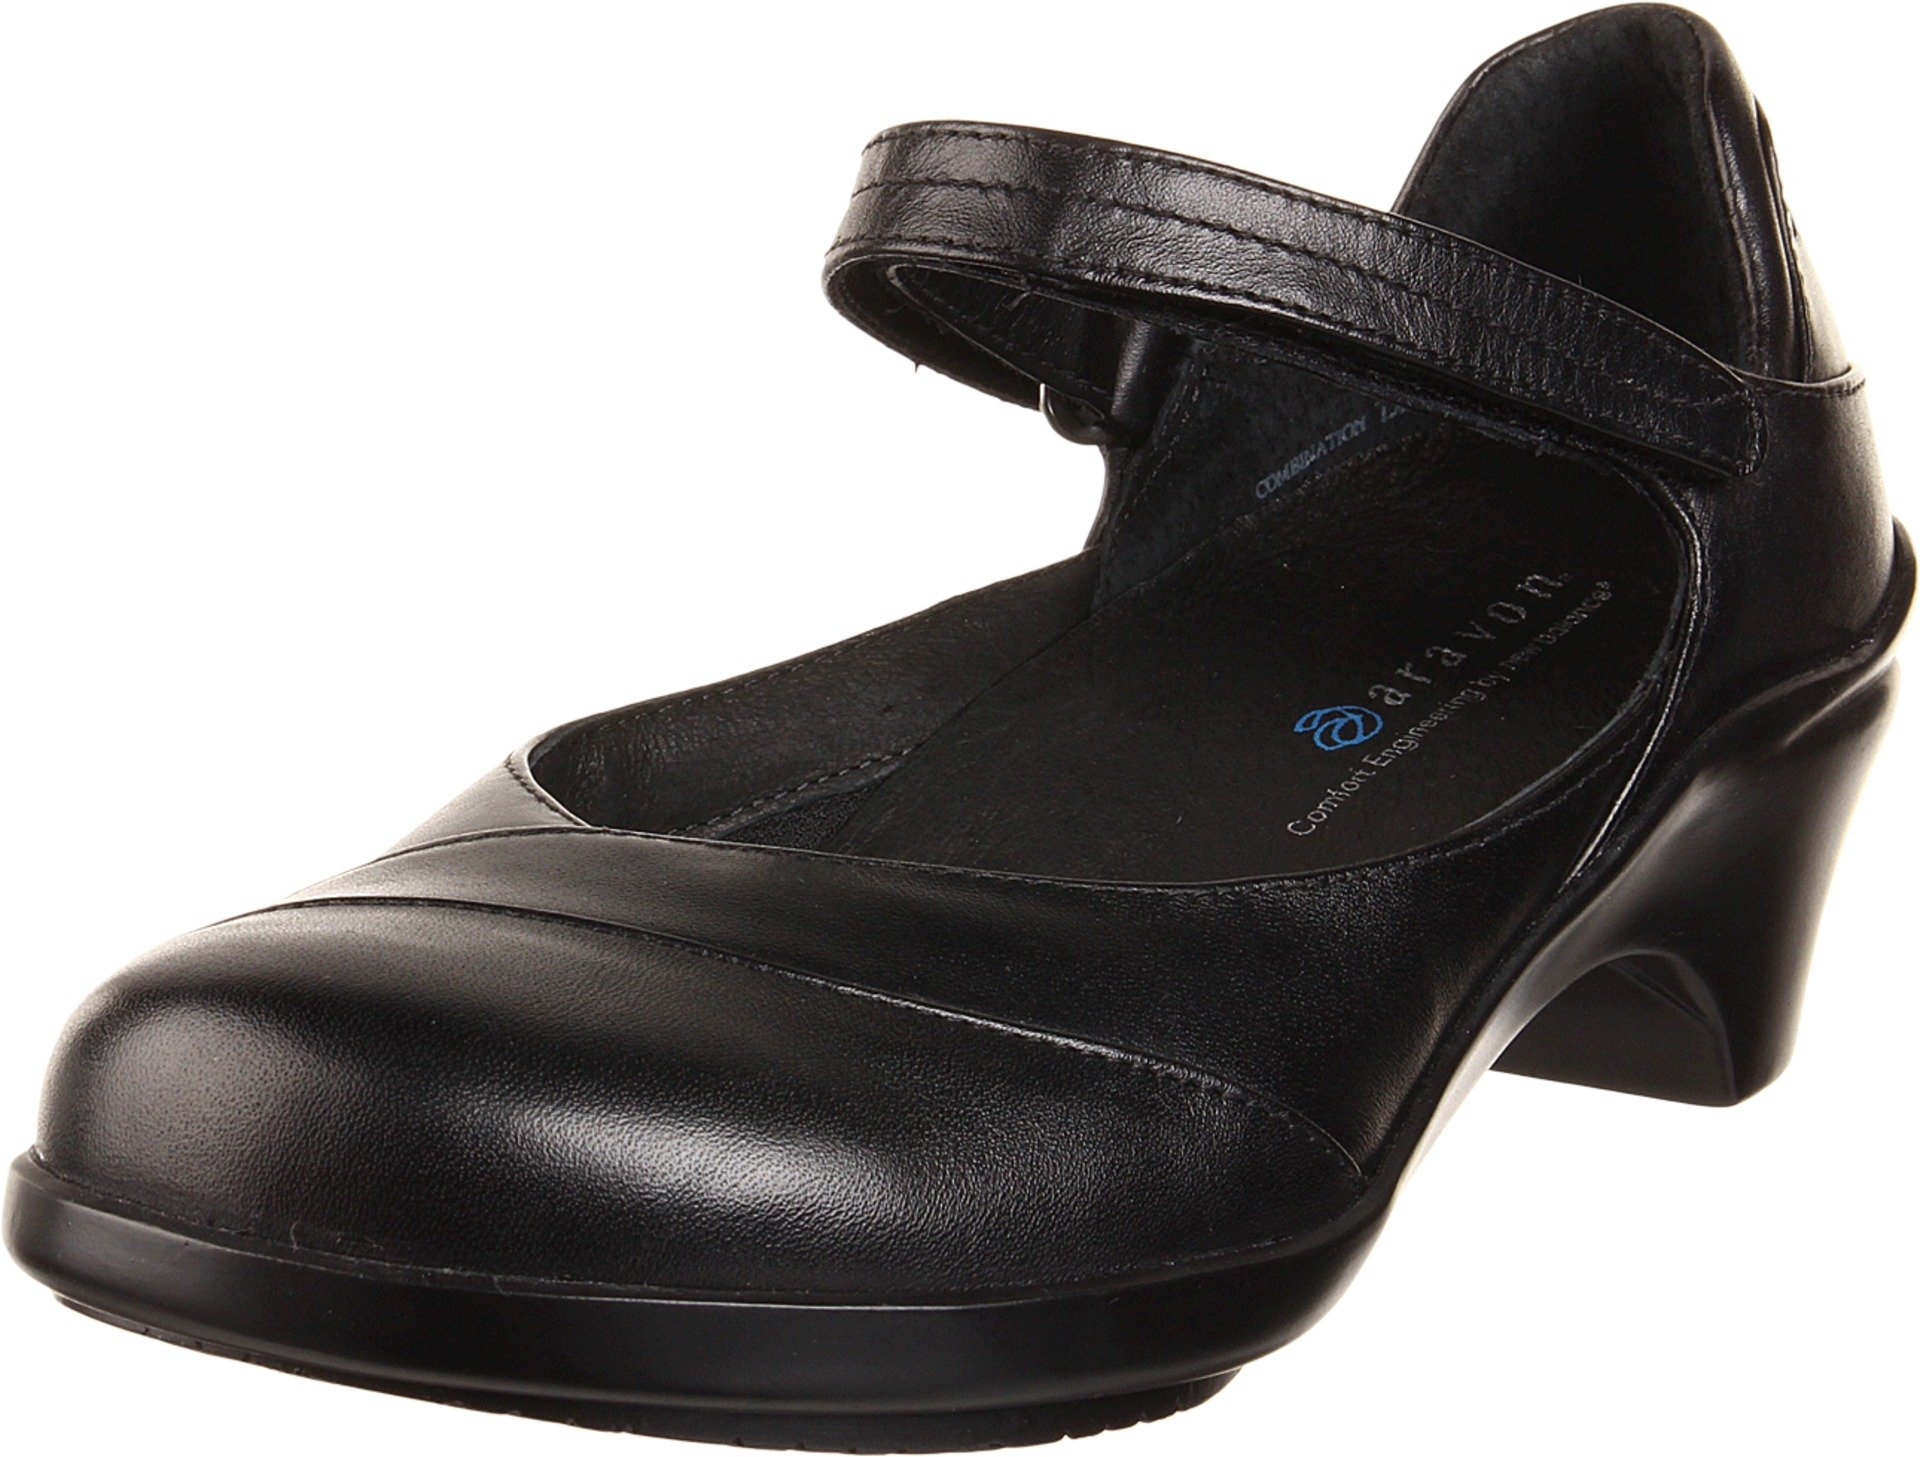 Aravon Womens Maya Pump,Black Leather,10.5 M (B) US by Aravon